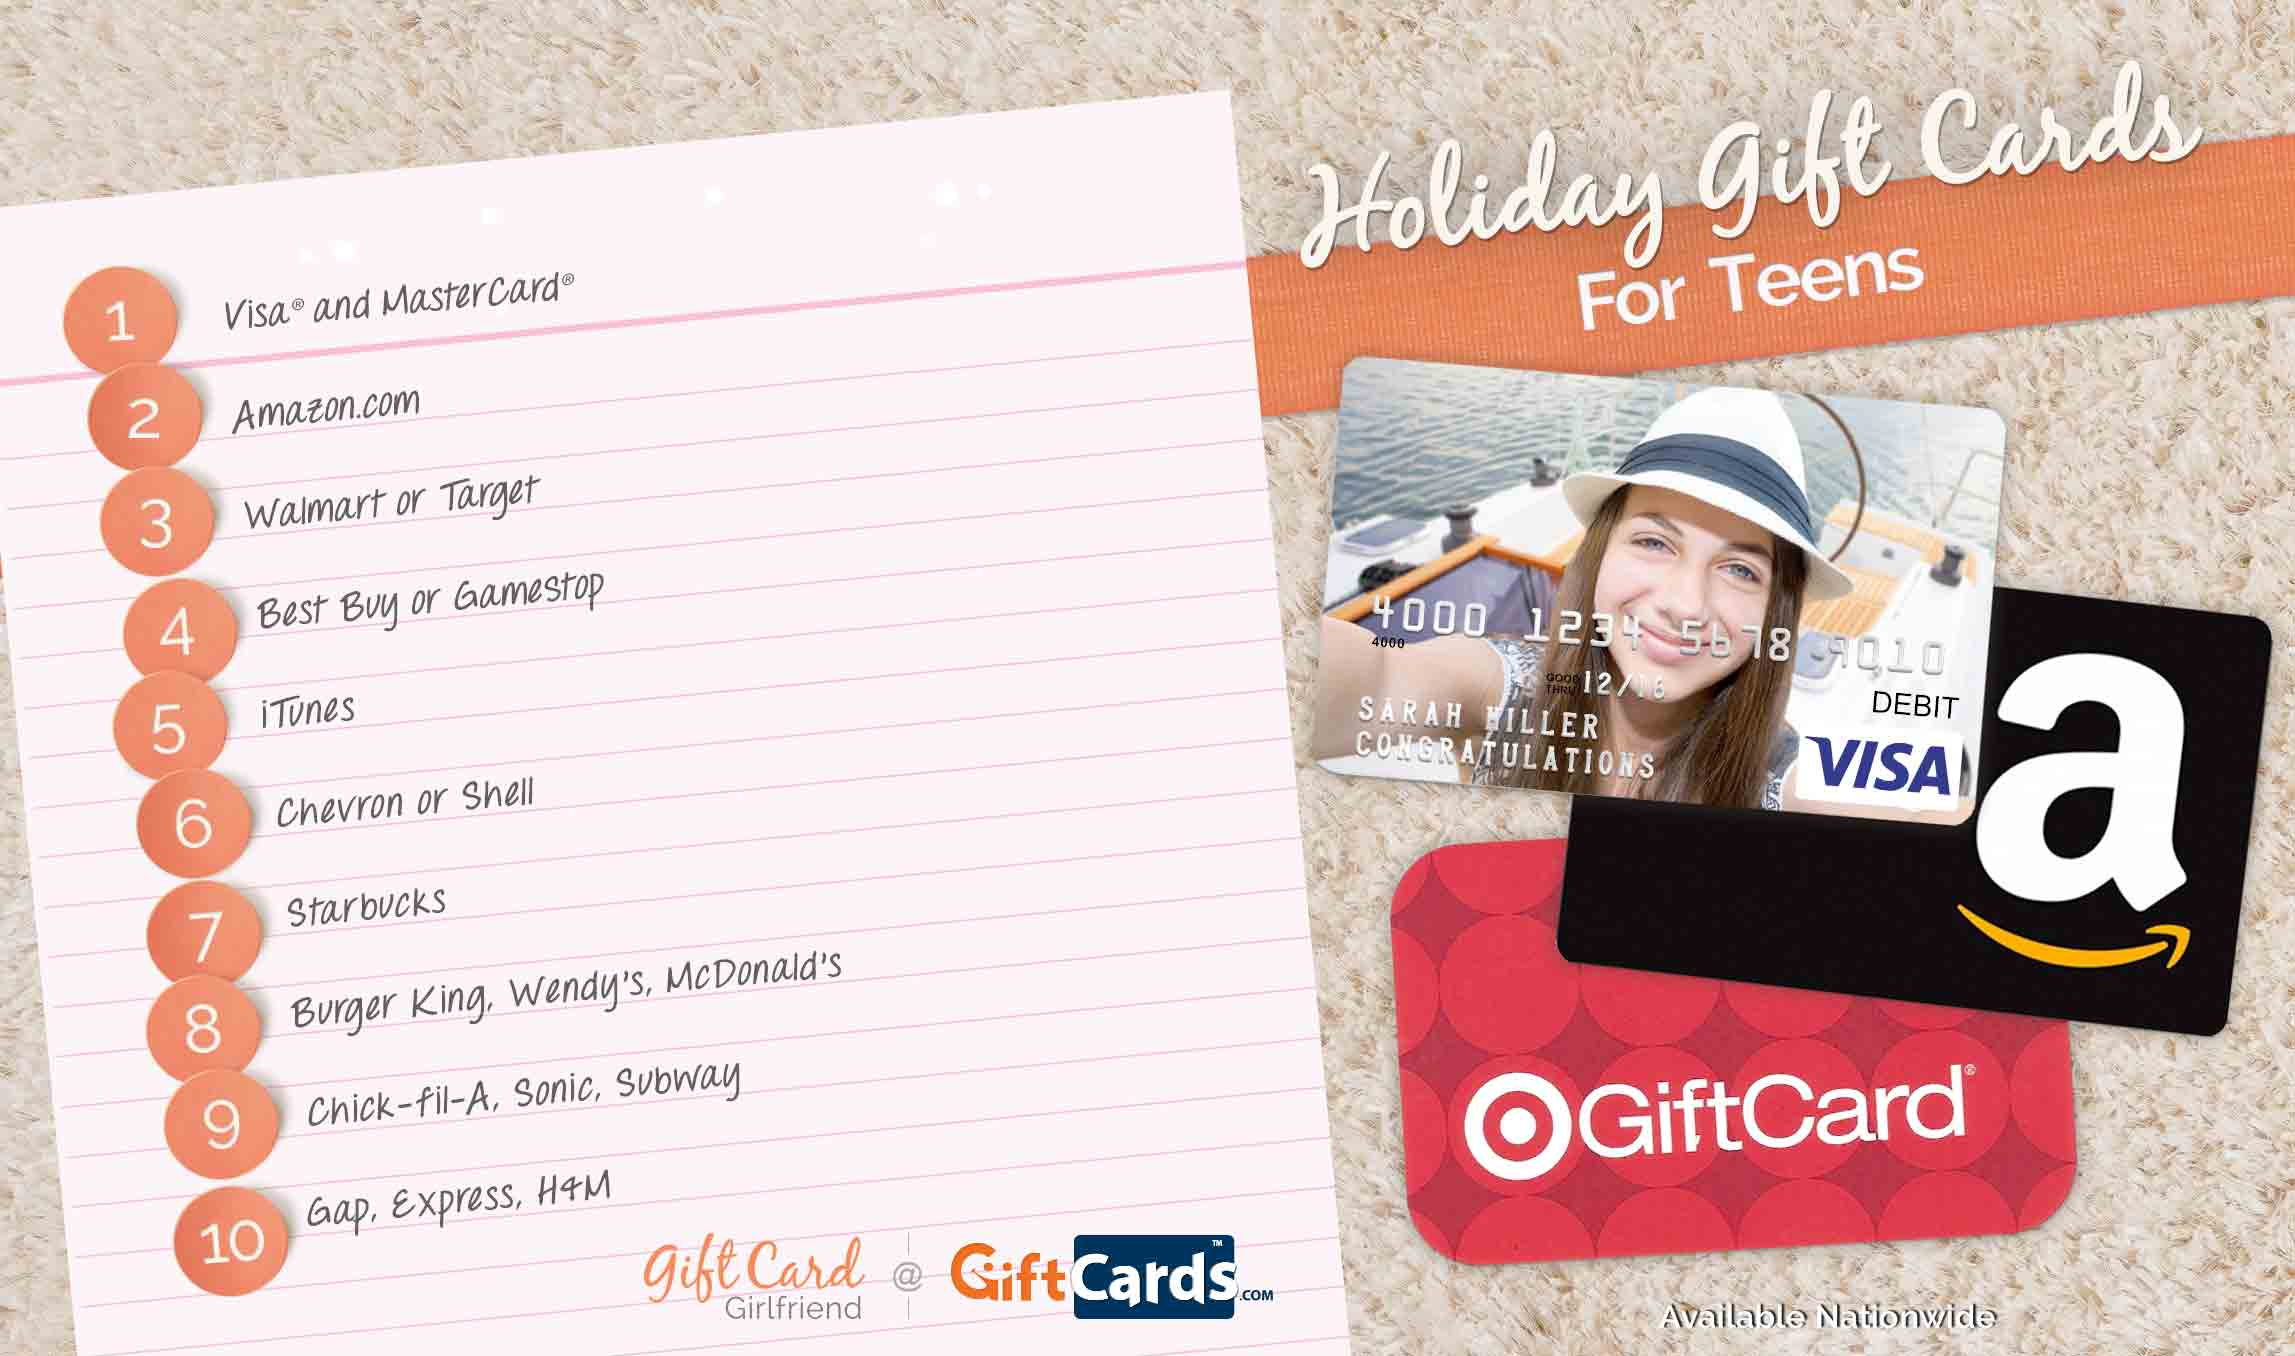 Top Gift Cards for Teens | Gift Card Girlfriend